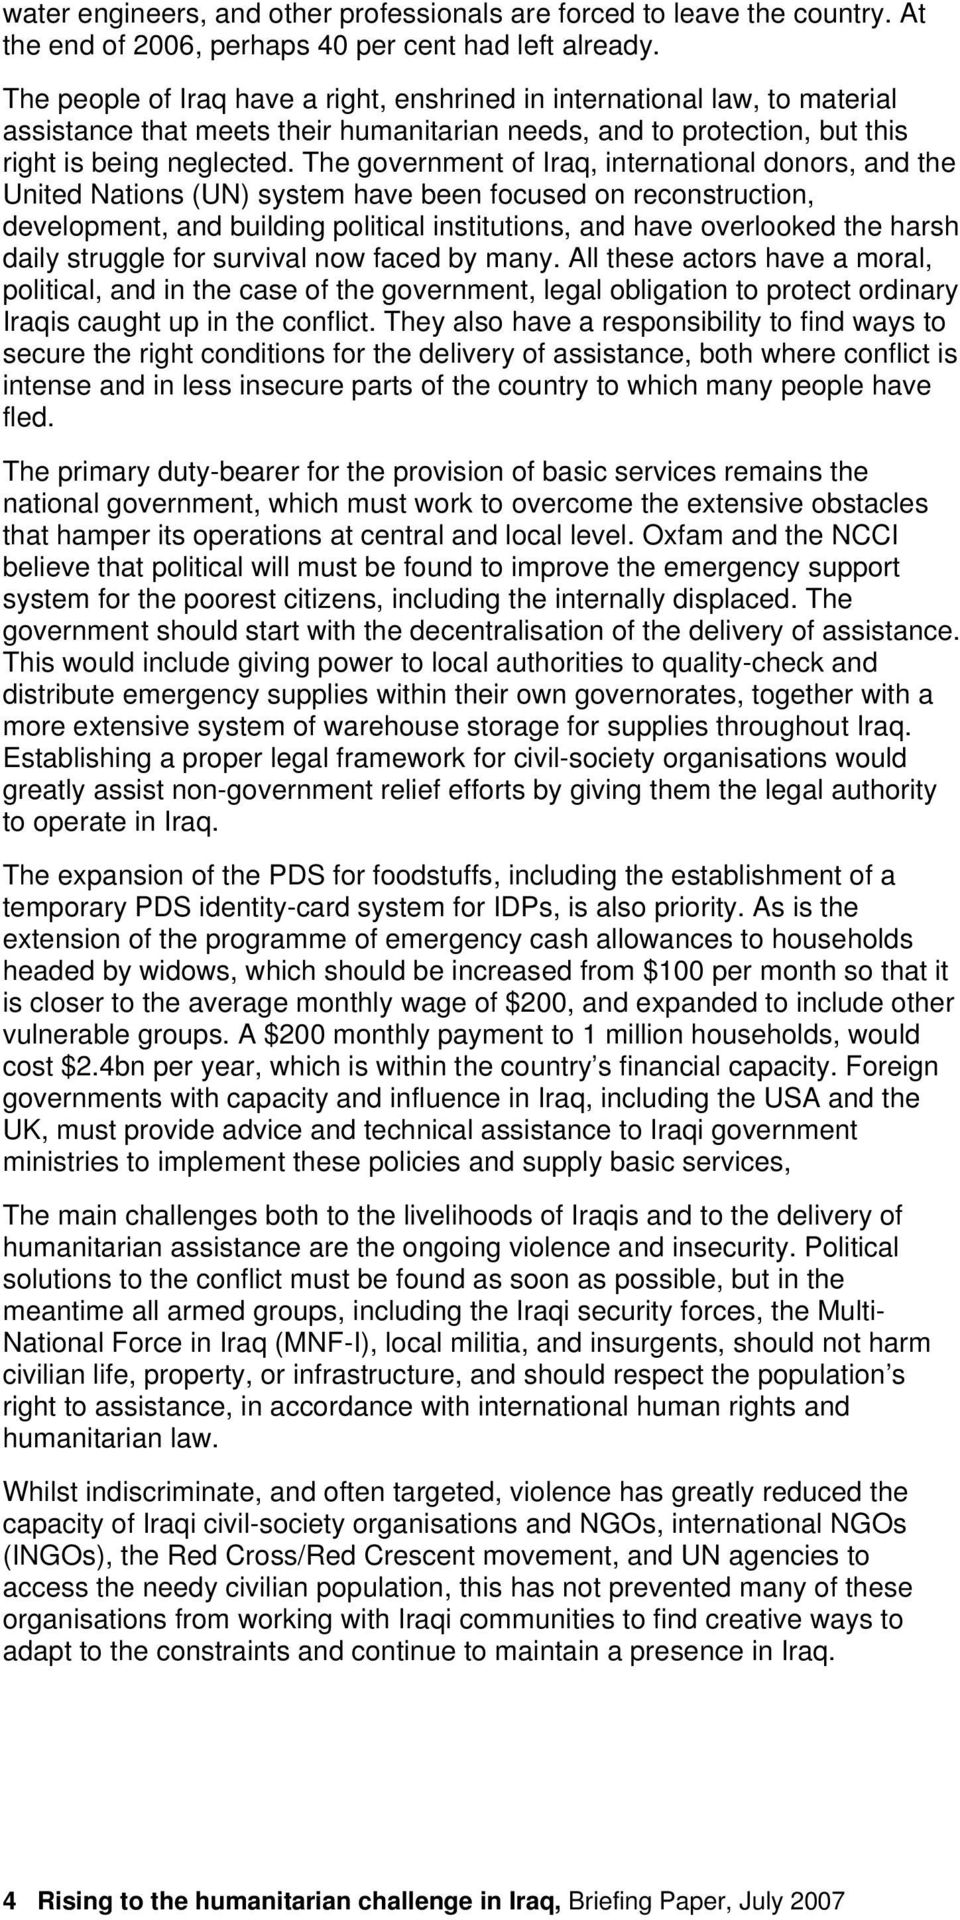 The government of Iraq, international donors, and the United Nations (UN) system have been focused on reconstruction, development, and building political institutions, and have overlooked the harsh